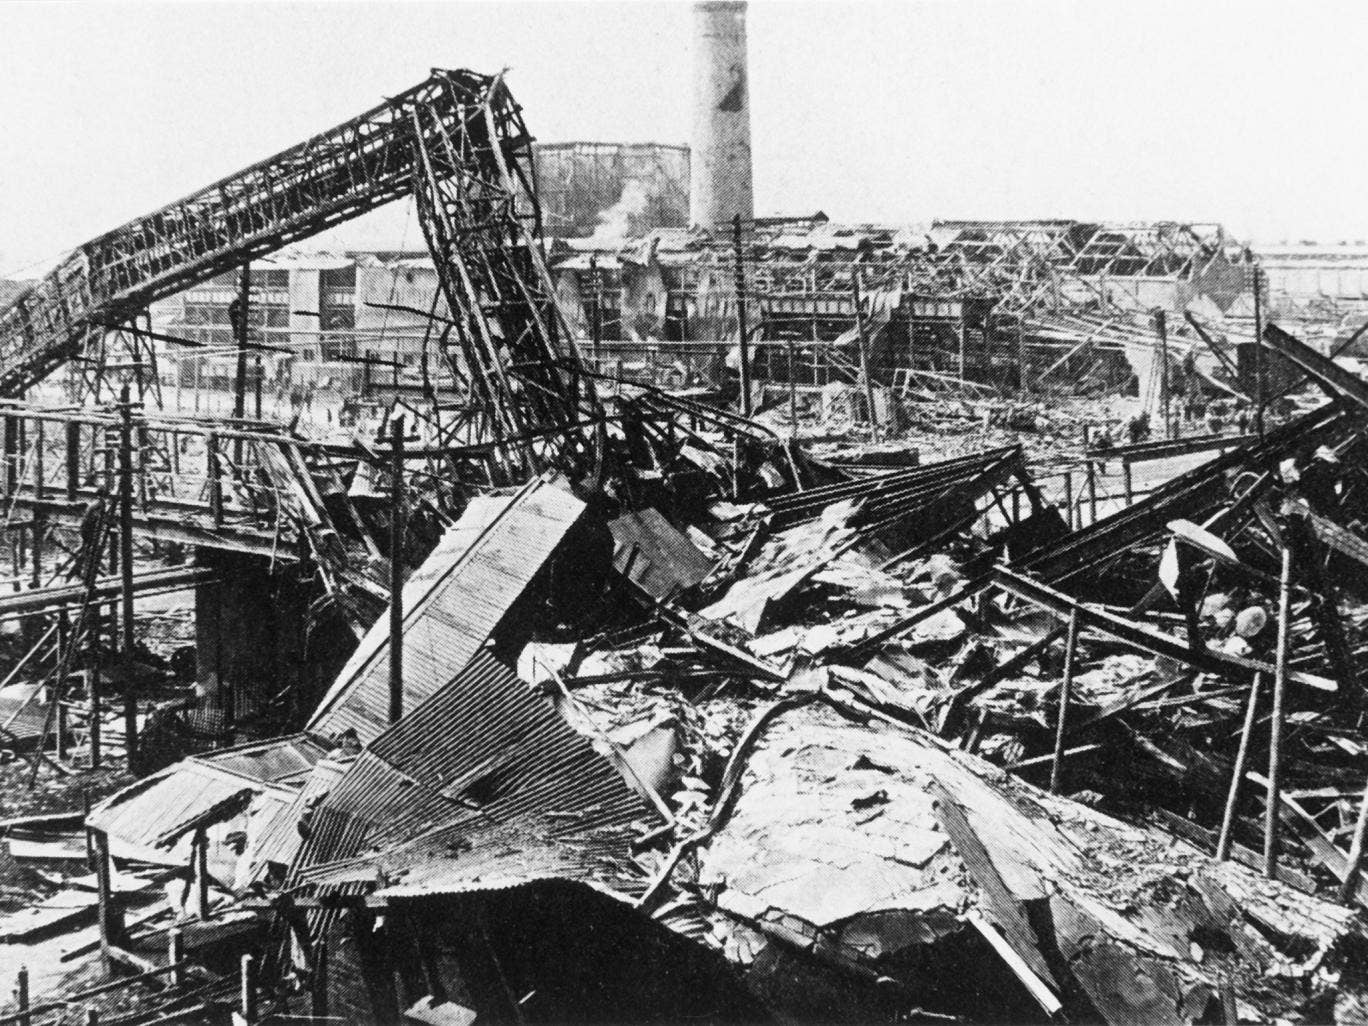 The aftermath of the explosion at the munitions plant in Chilwell